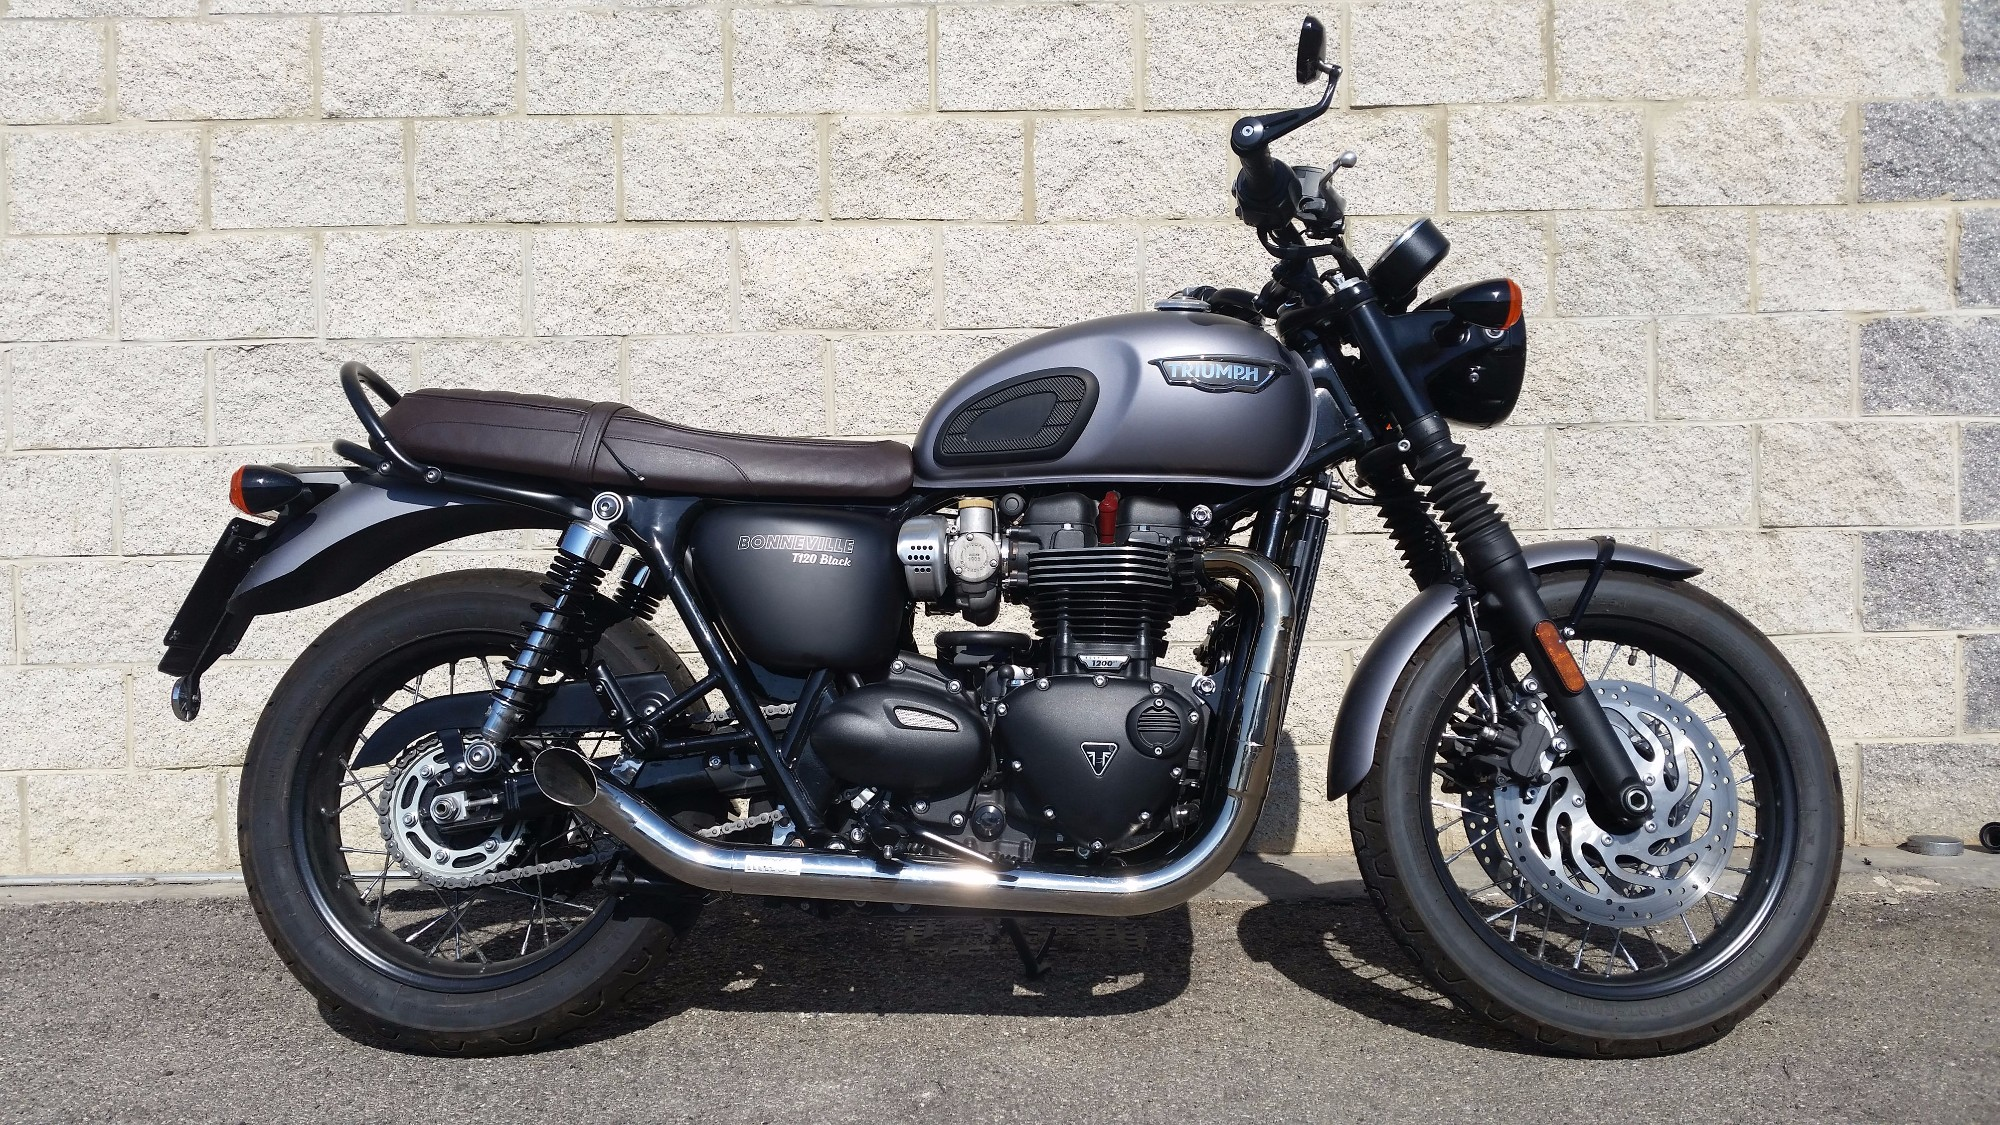 Triumph Bonneville T120 Massmoto Exhaust Full System 2in2 Hot Rod